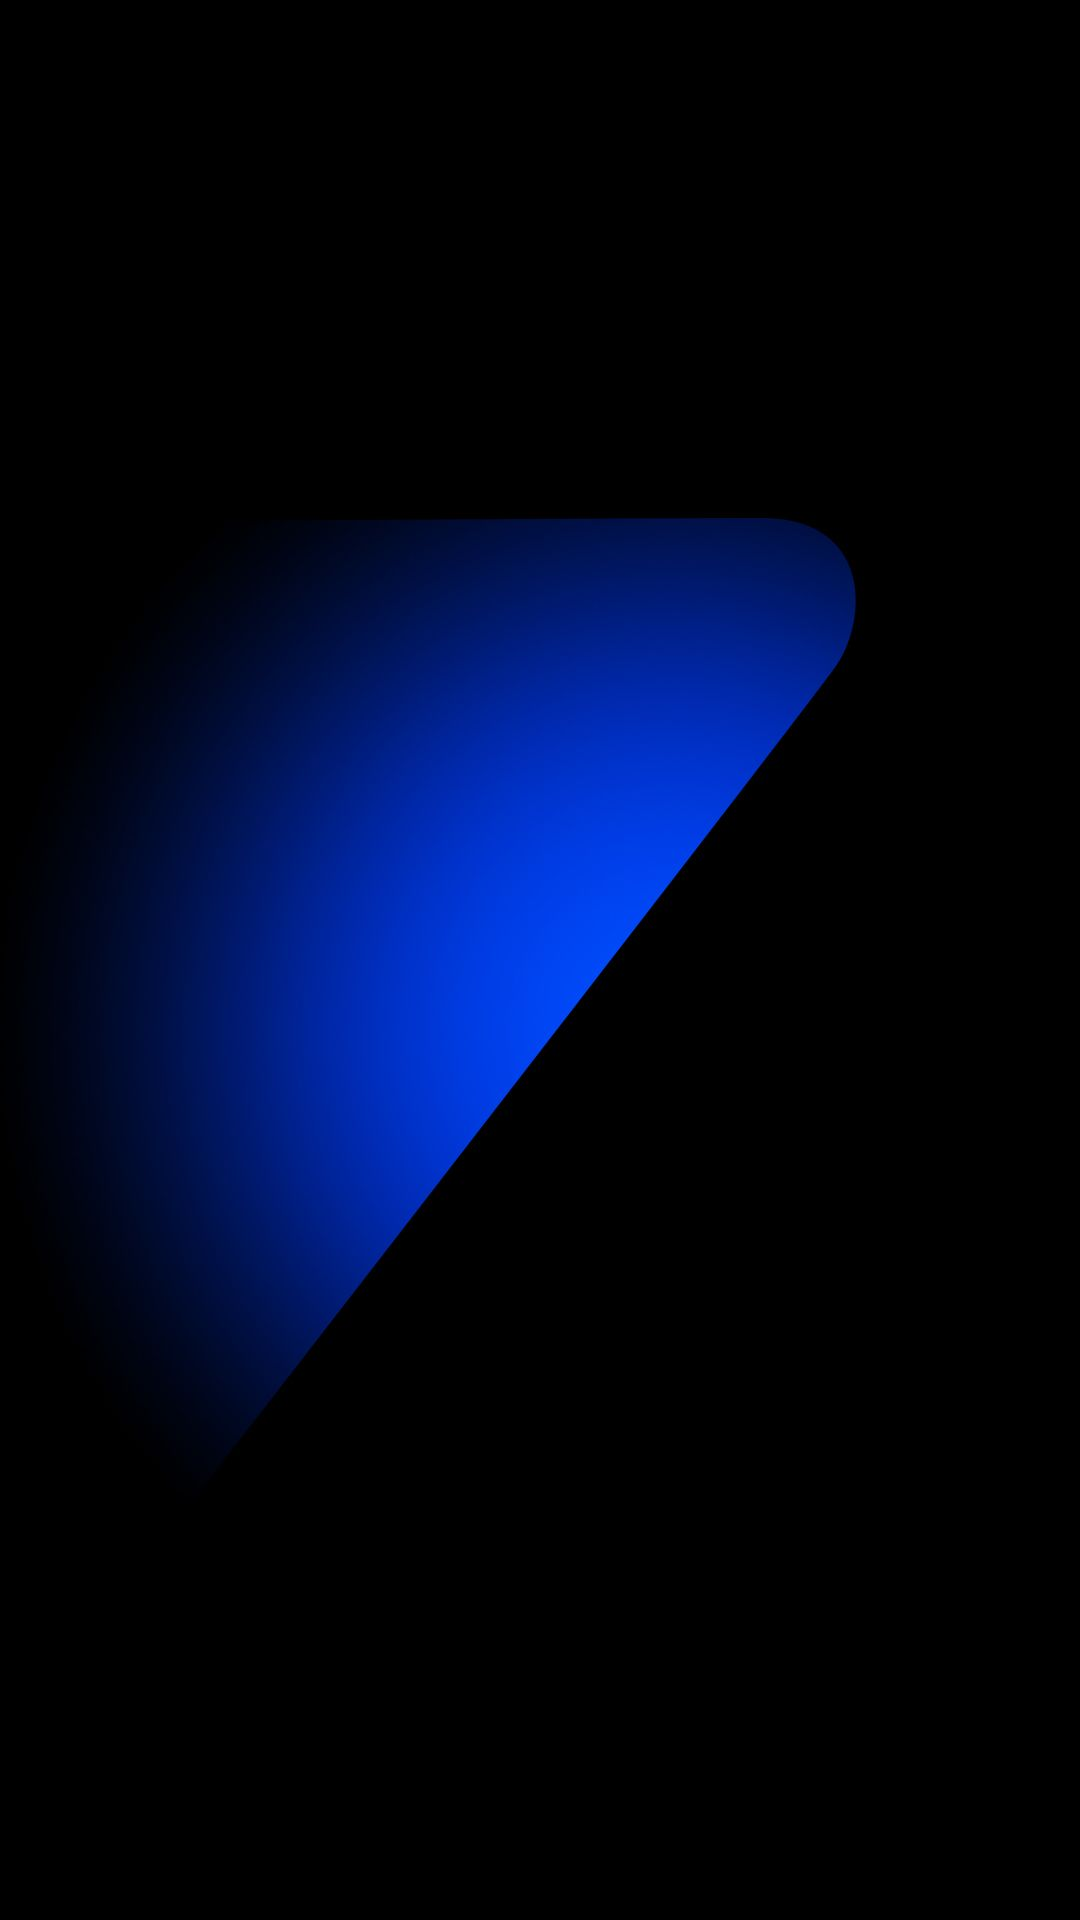 Bien-aimé Samsung Galaxy S7 Edge lock screen wallpaper | Design | Pinterest  VG16